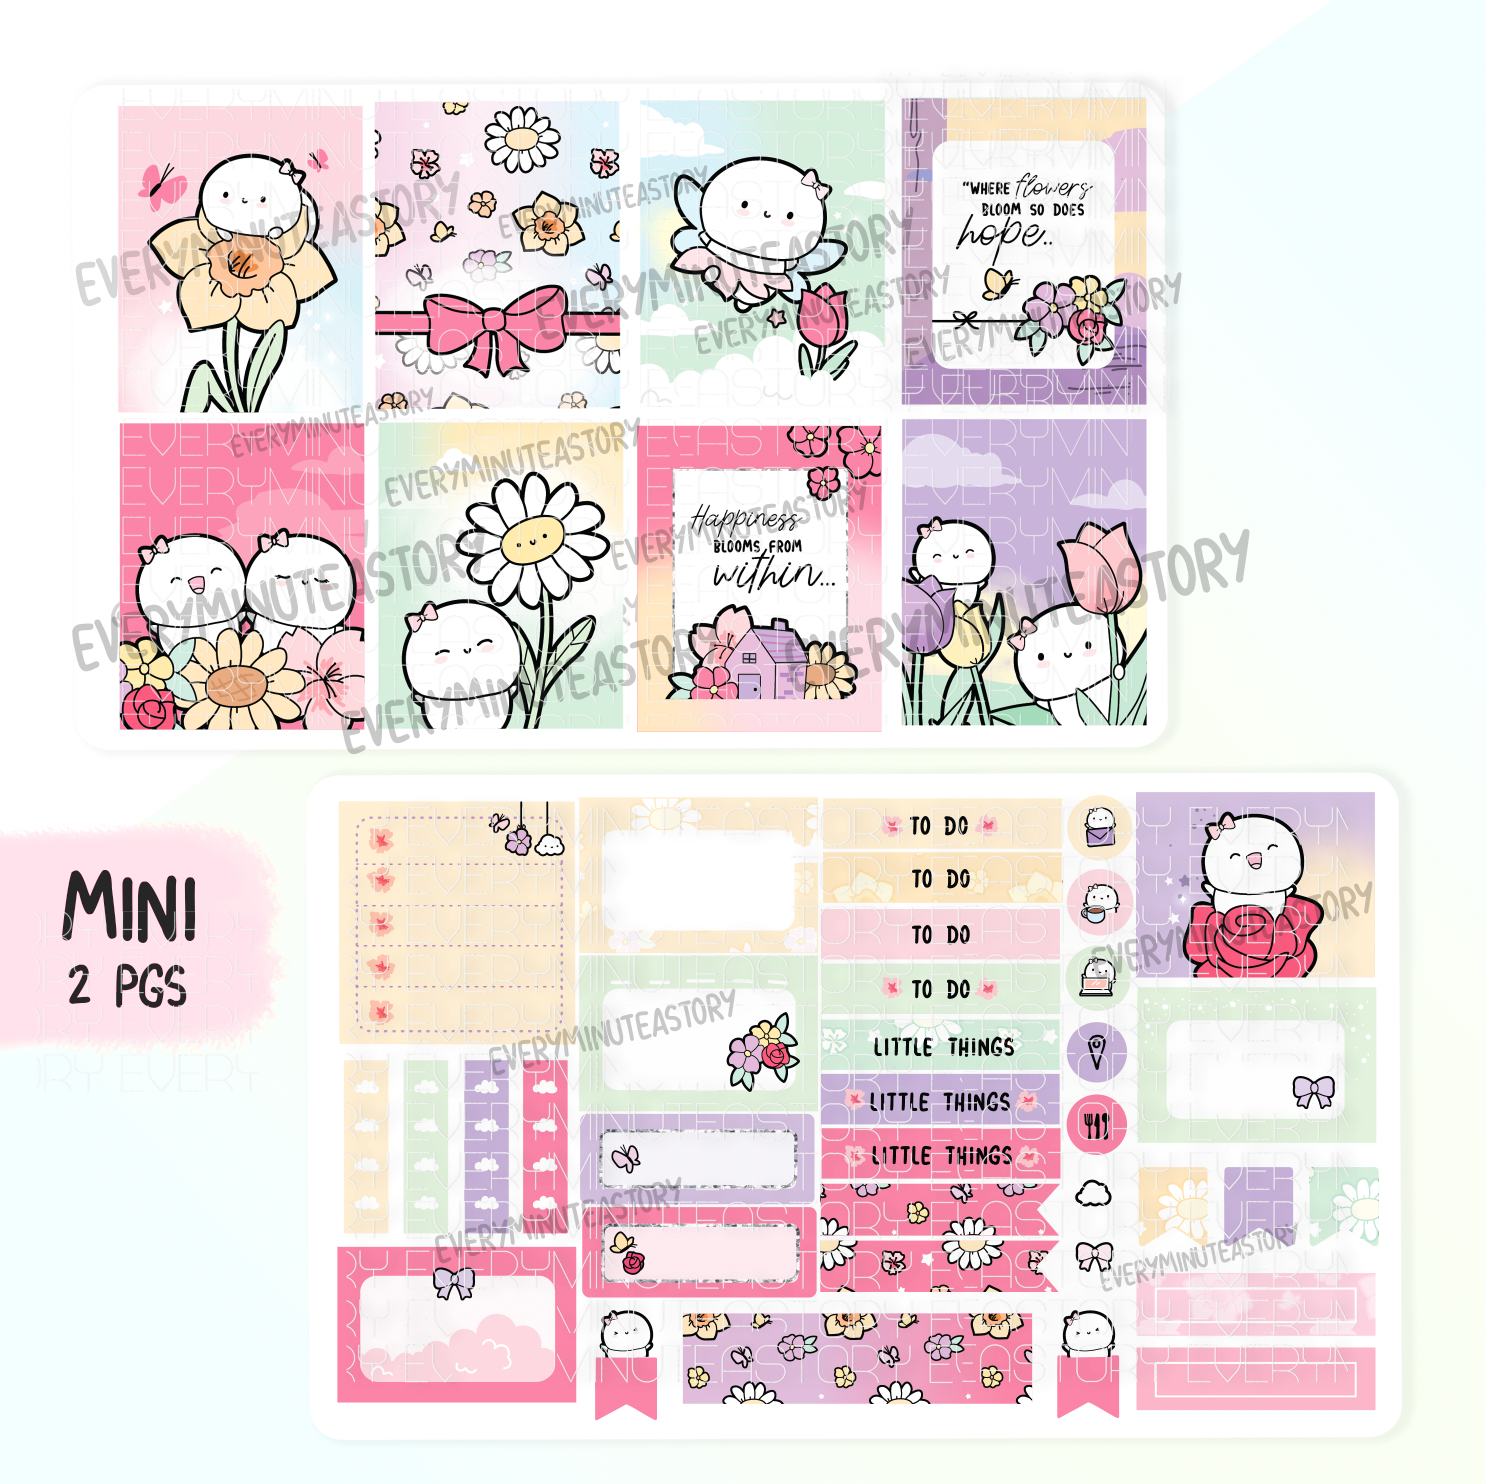 Happiness blooms from within floral hand-drawn kit- mini and full kit